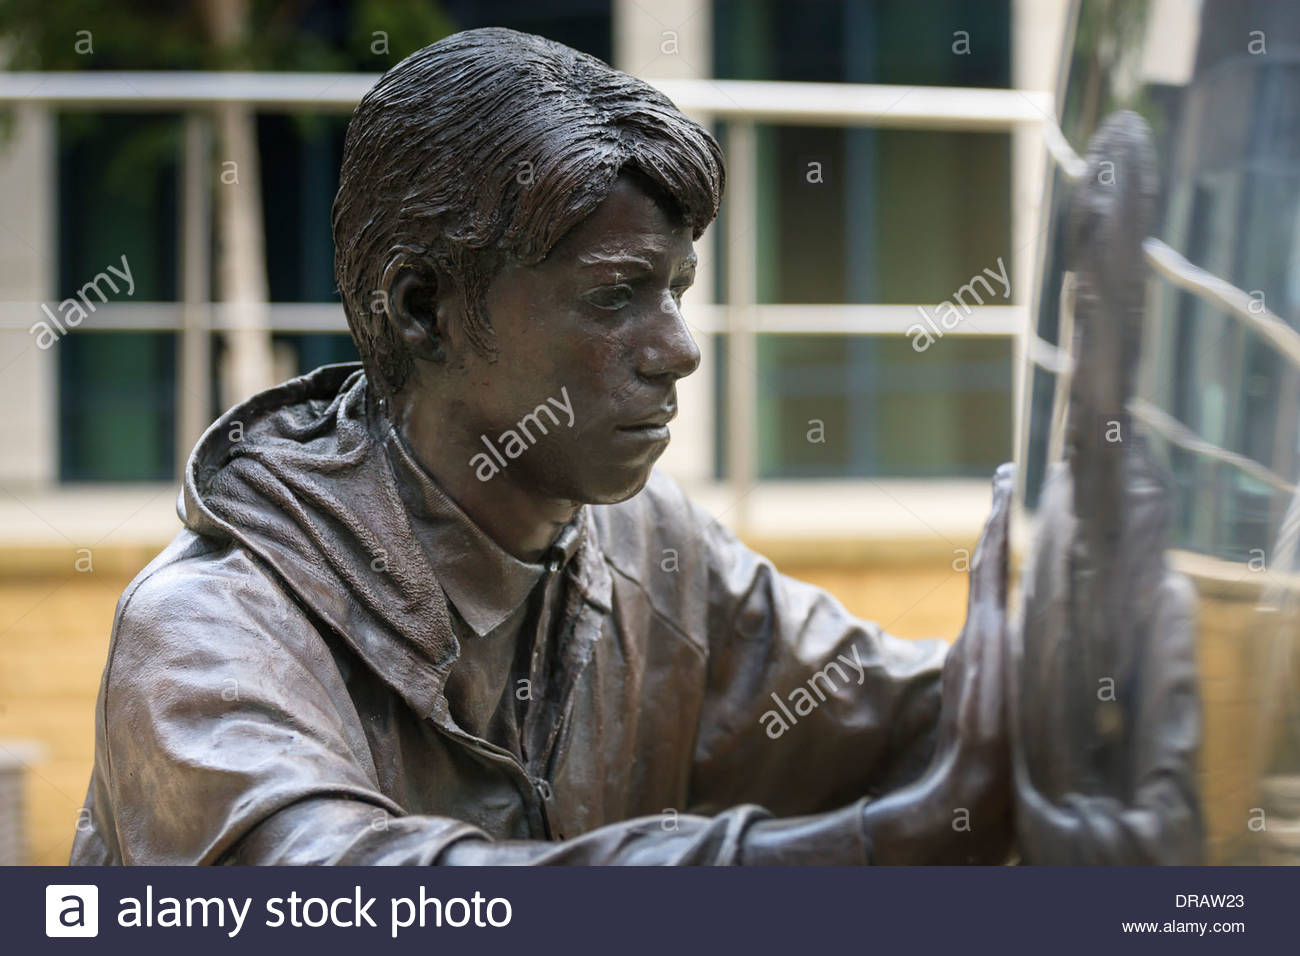 Modern sculpture 'Reflective Approach' at Clarence Dock Leeds West Yorkshire England - Stock Image